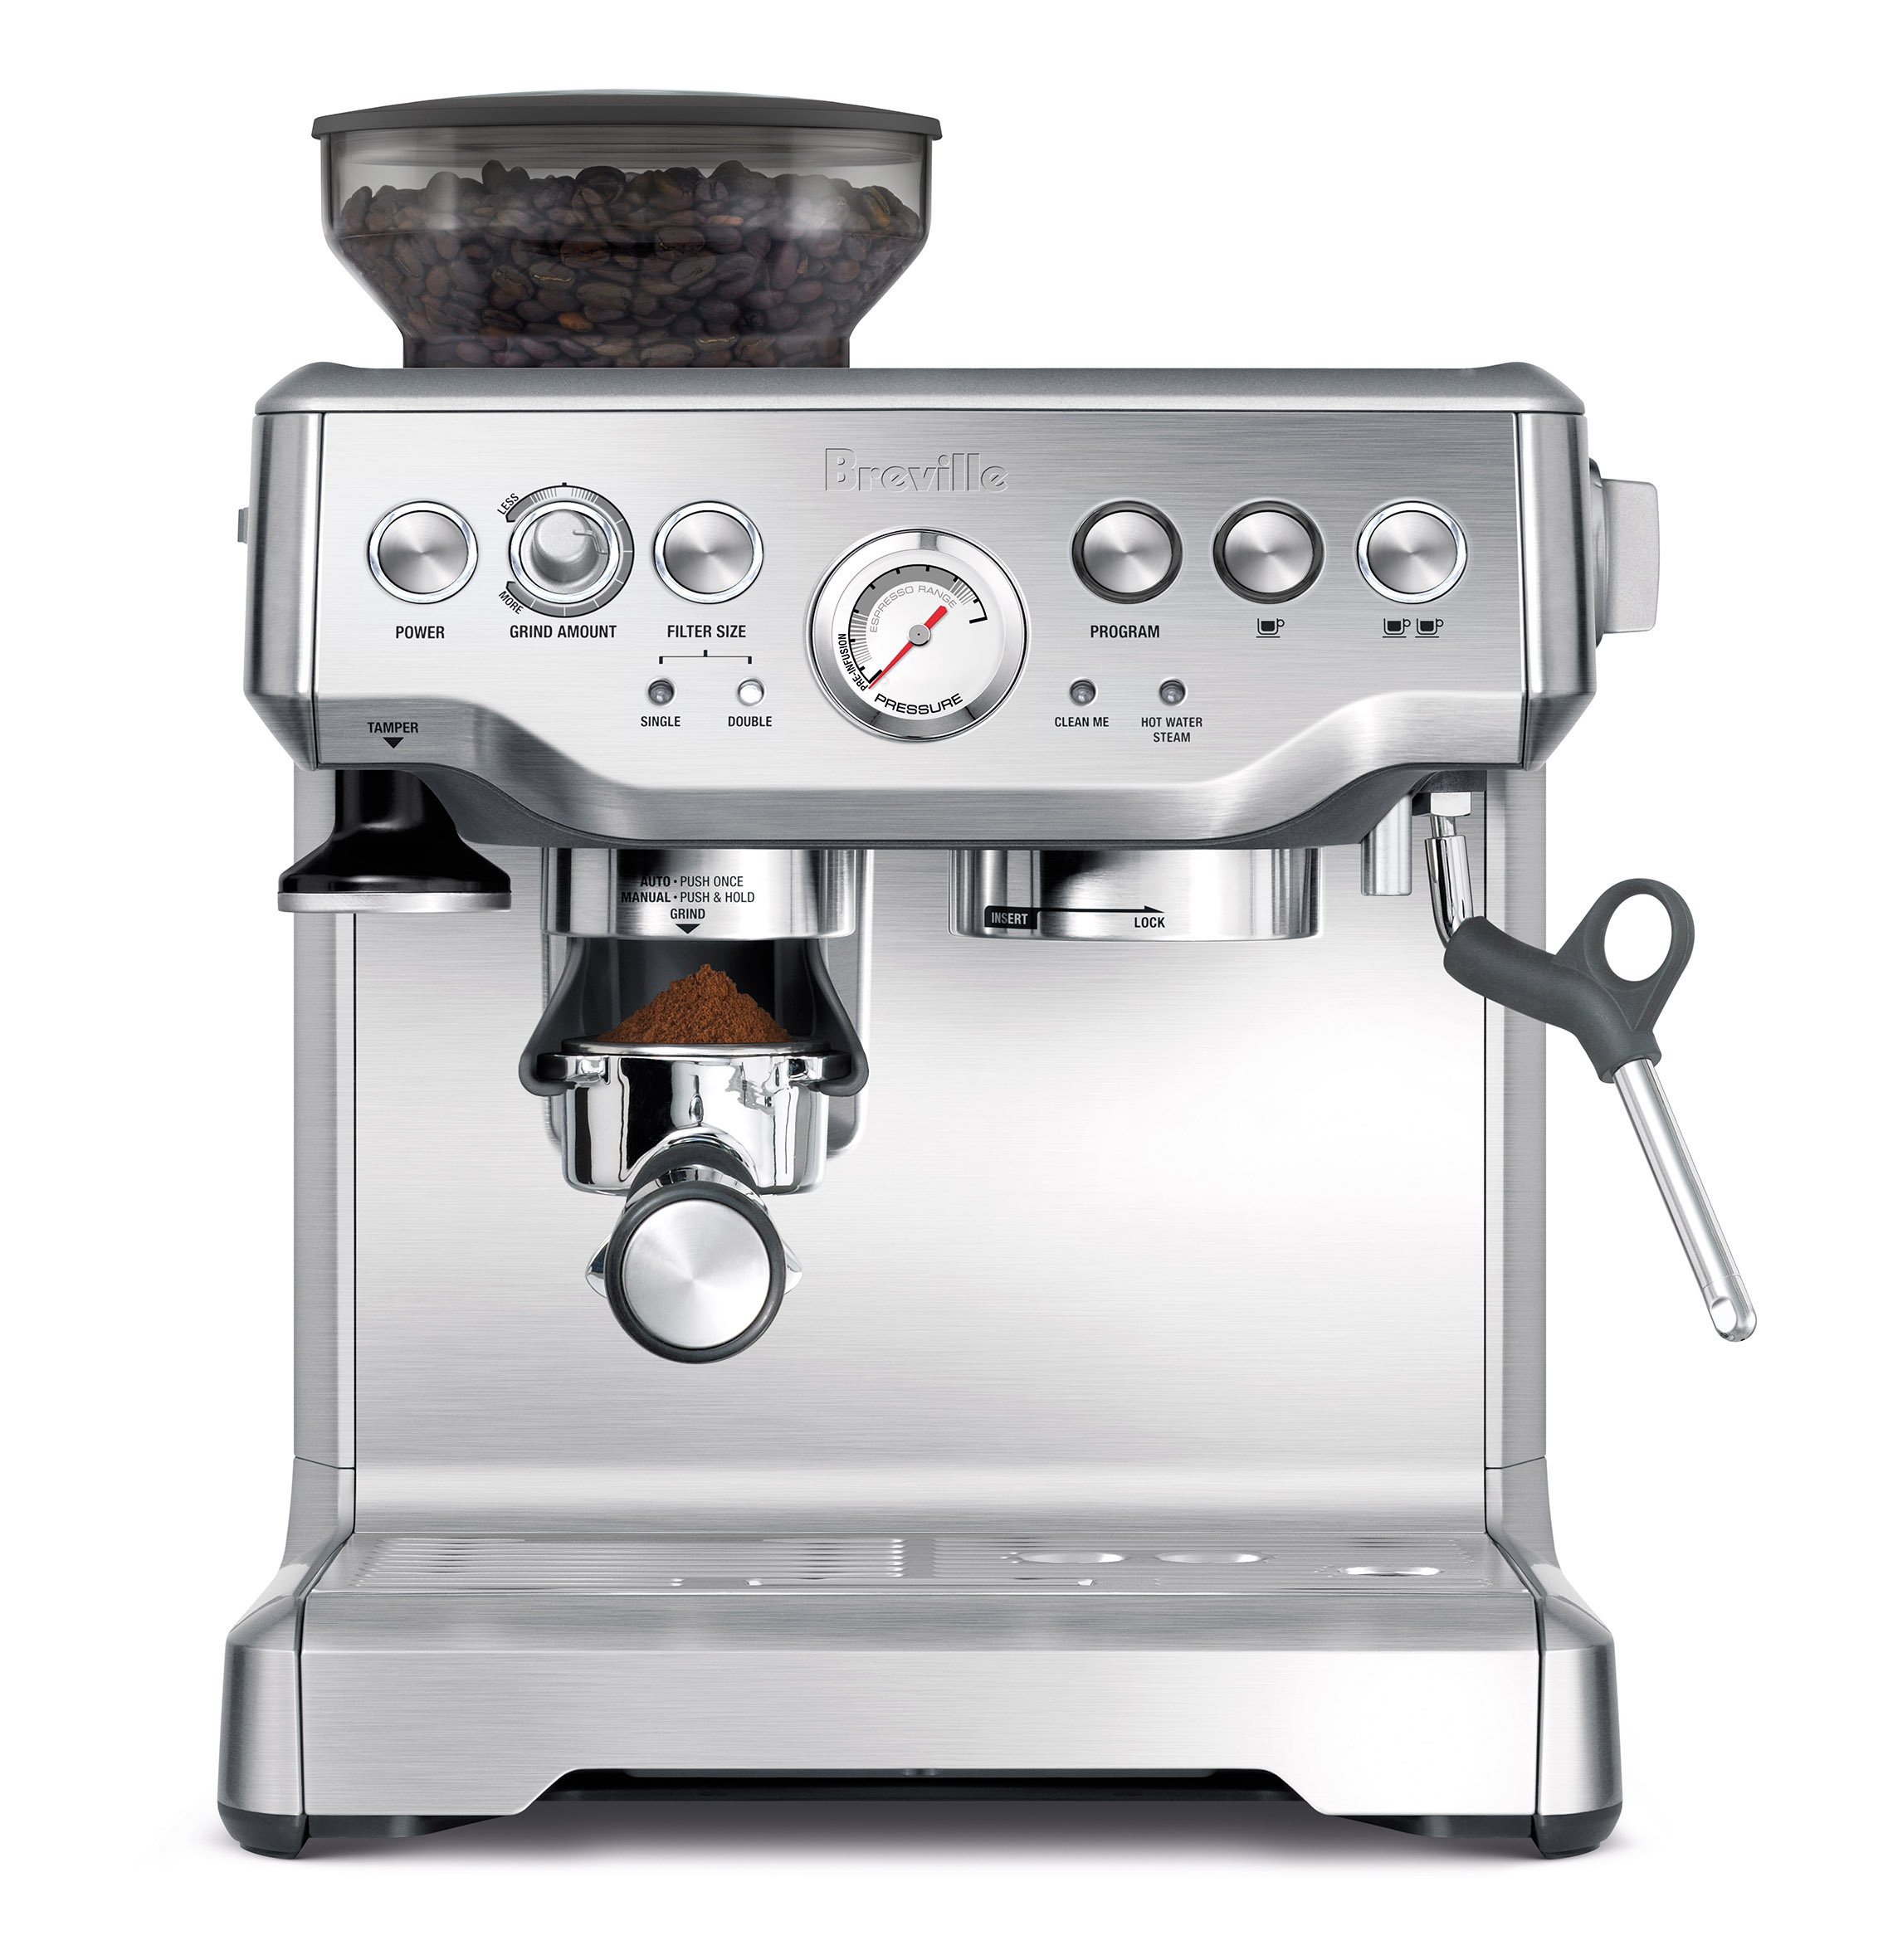 Breville Bes870xl Barista Express Espresso Machine Semi Old Town Coffe 2 In1 Isi 15 Automatic Pump Machines Kitchen Dining